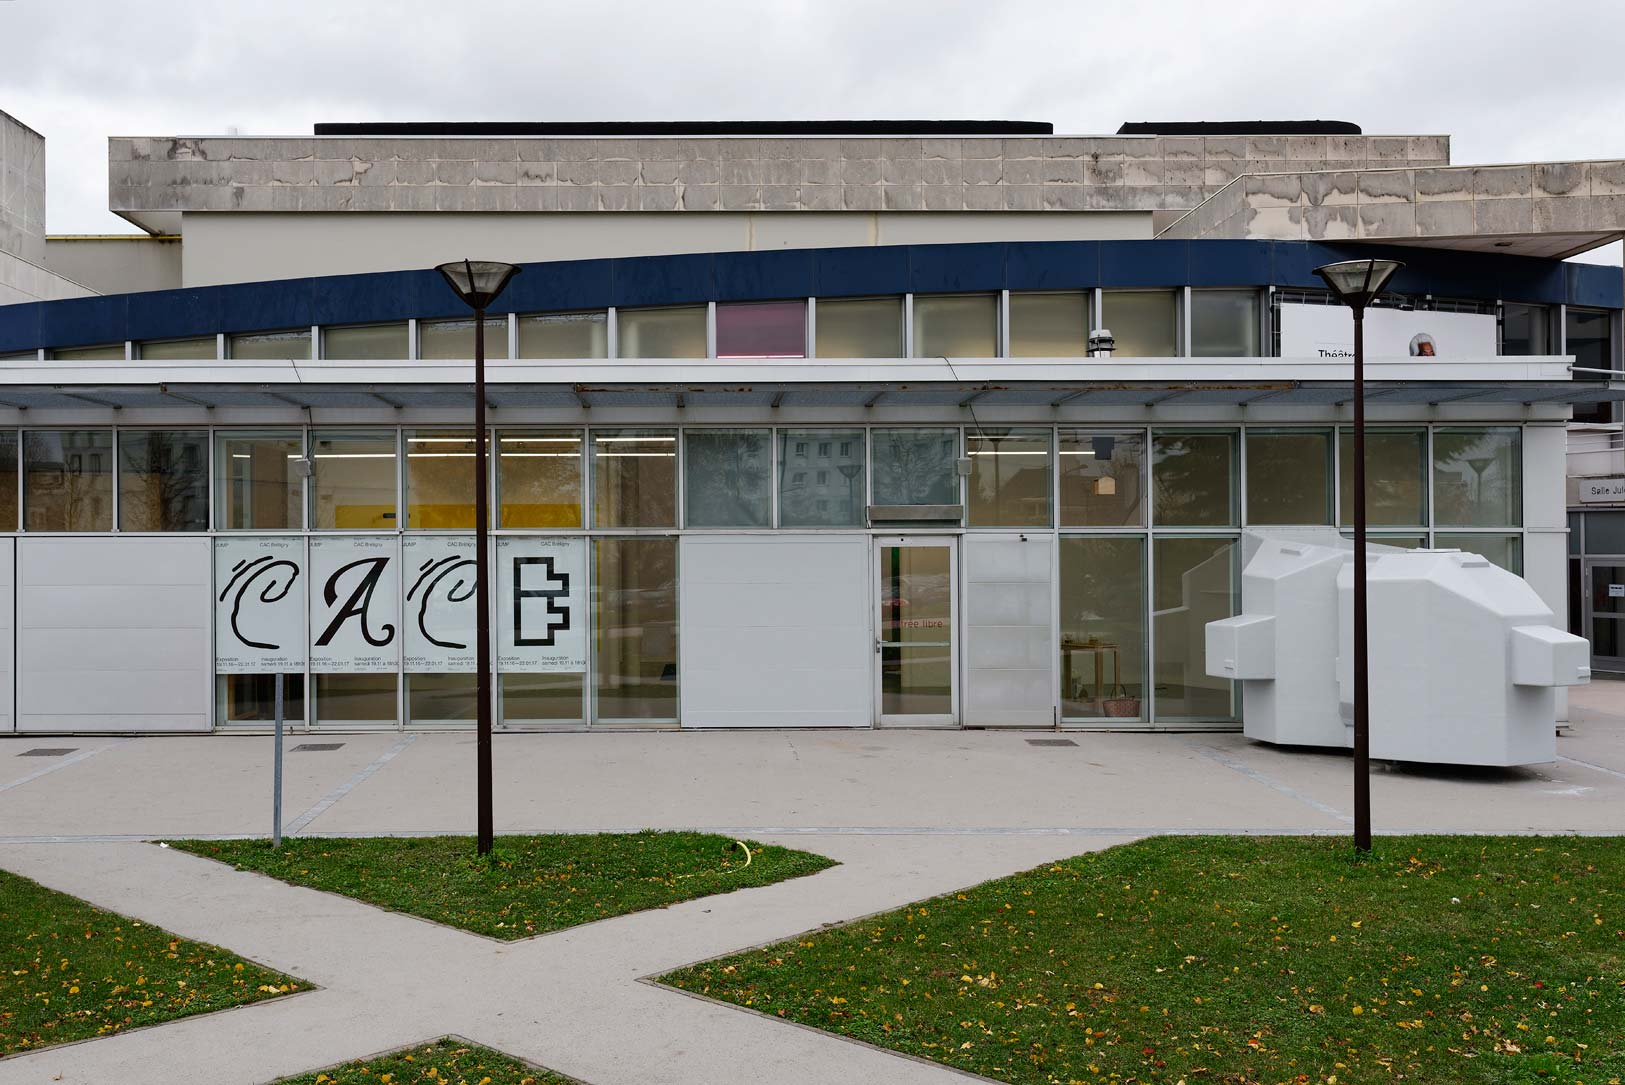 CAC Brétigny, centre d'art contemporain d'intérêt national